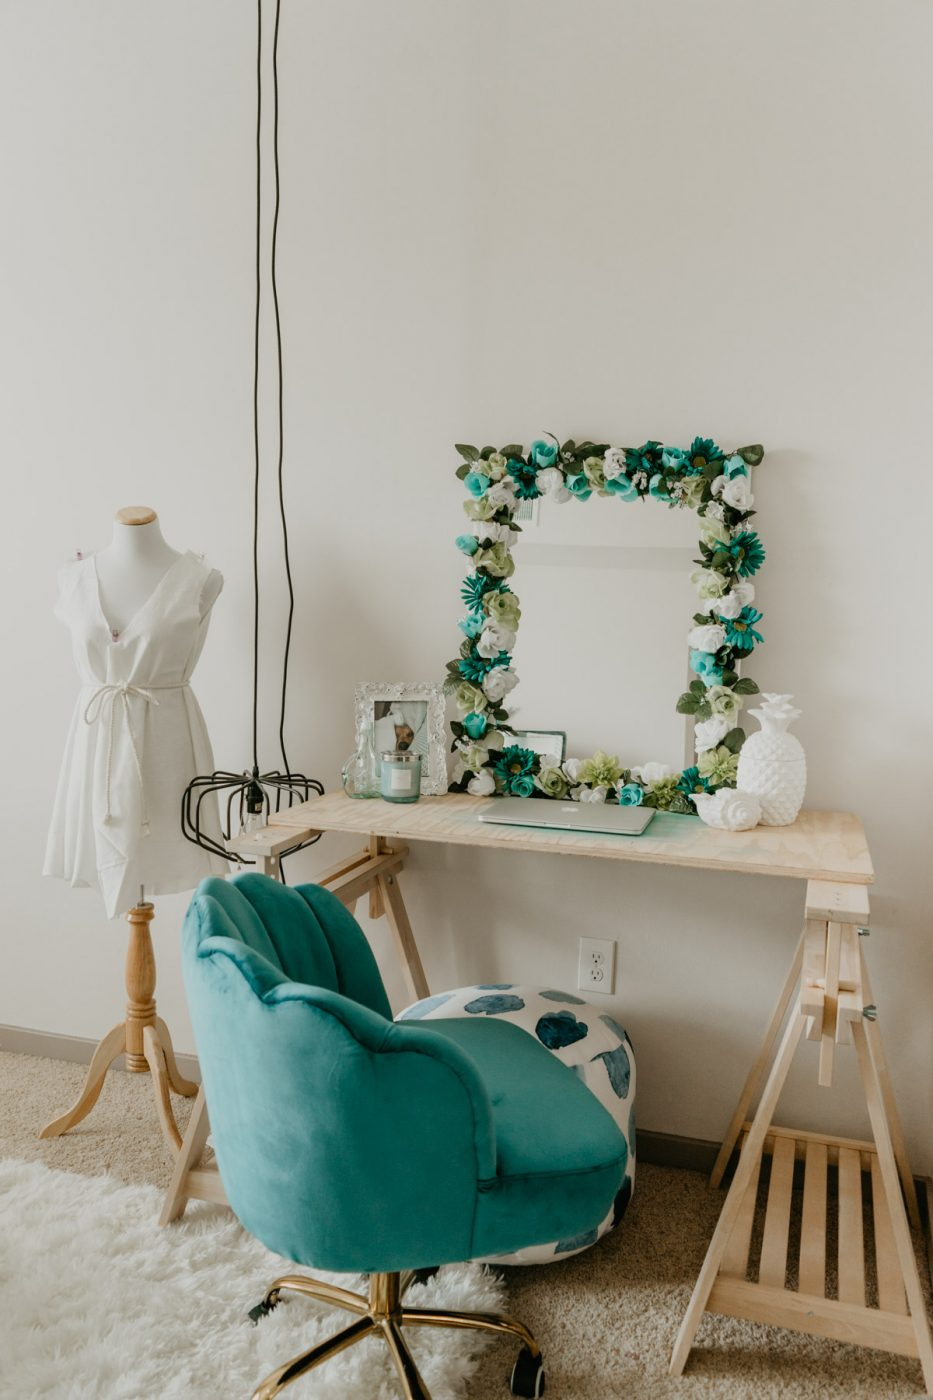 DIY Flower Mirror on Desk - Sweet Teal